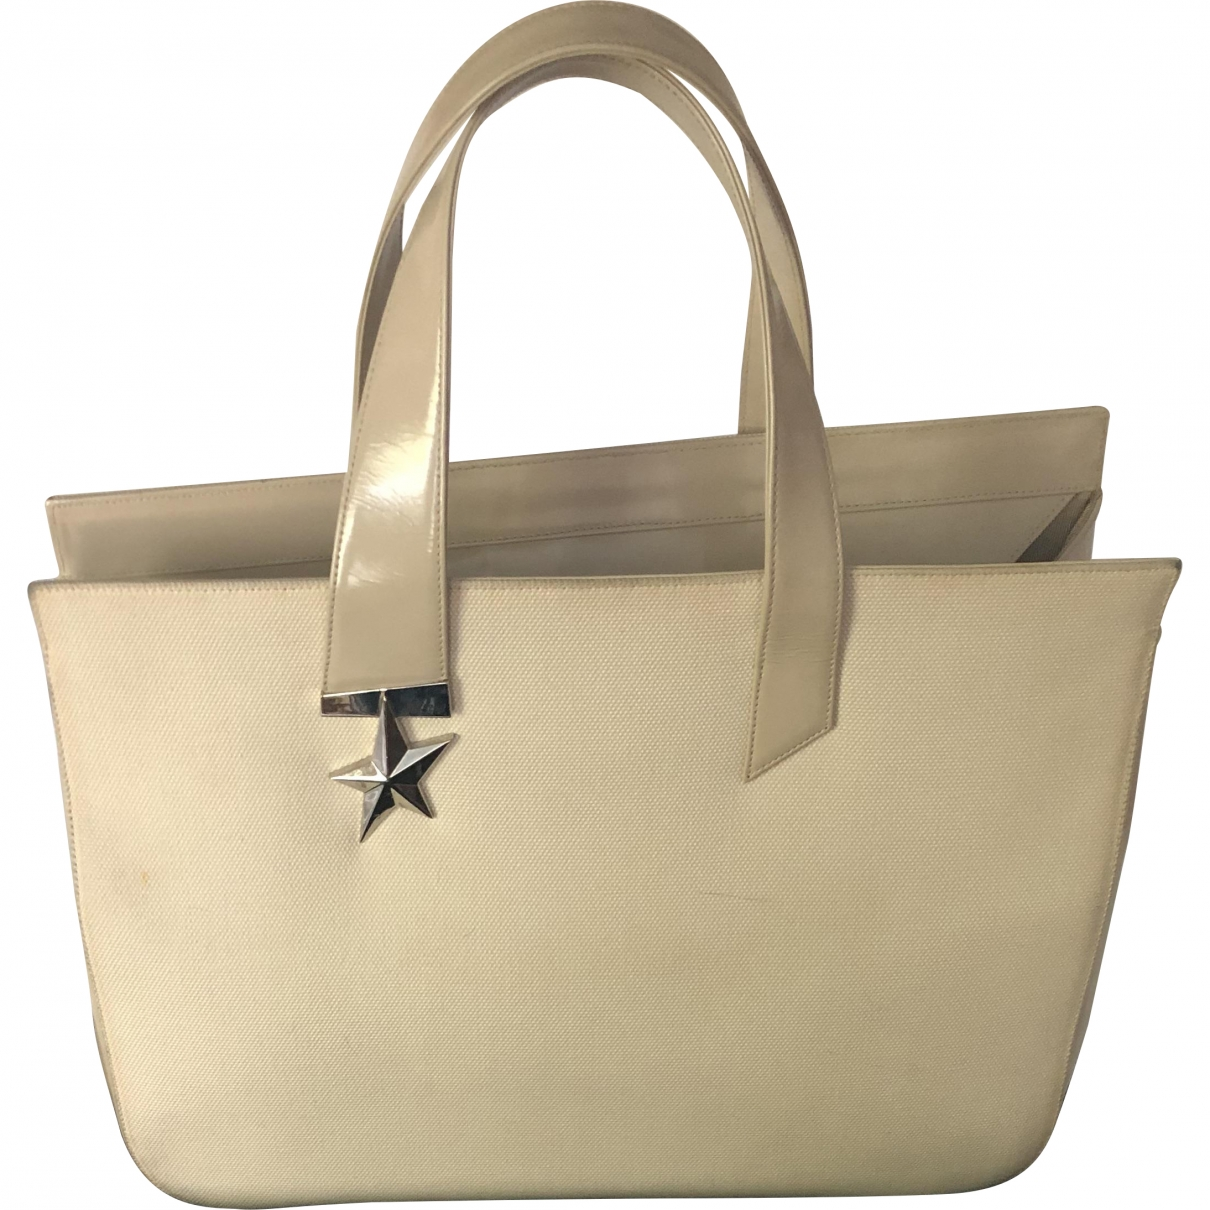 Thierry Mugler \N Beige Leather handbag for Women \N